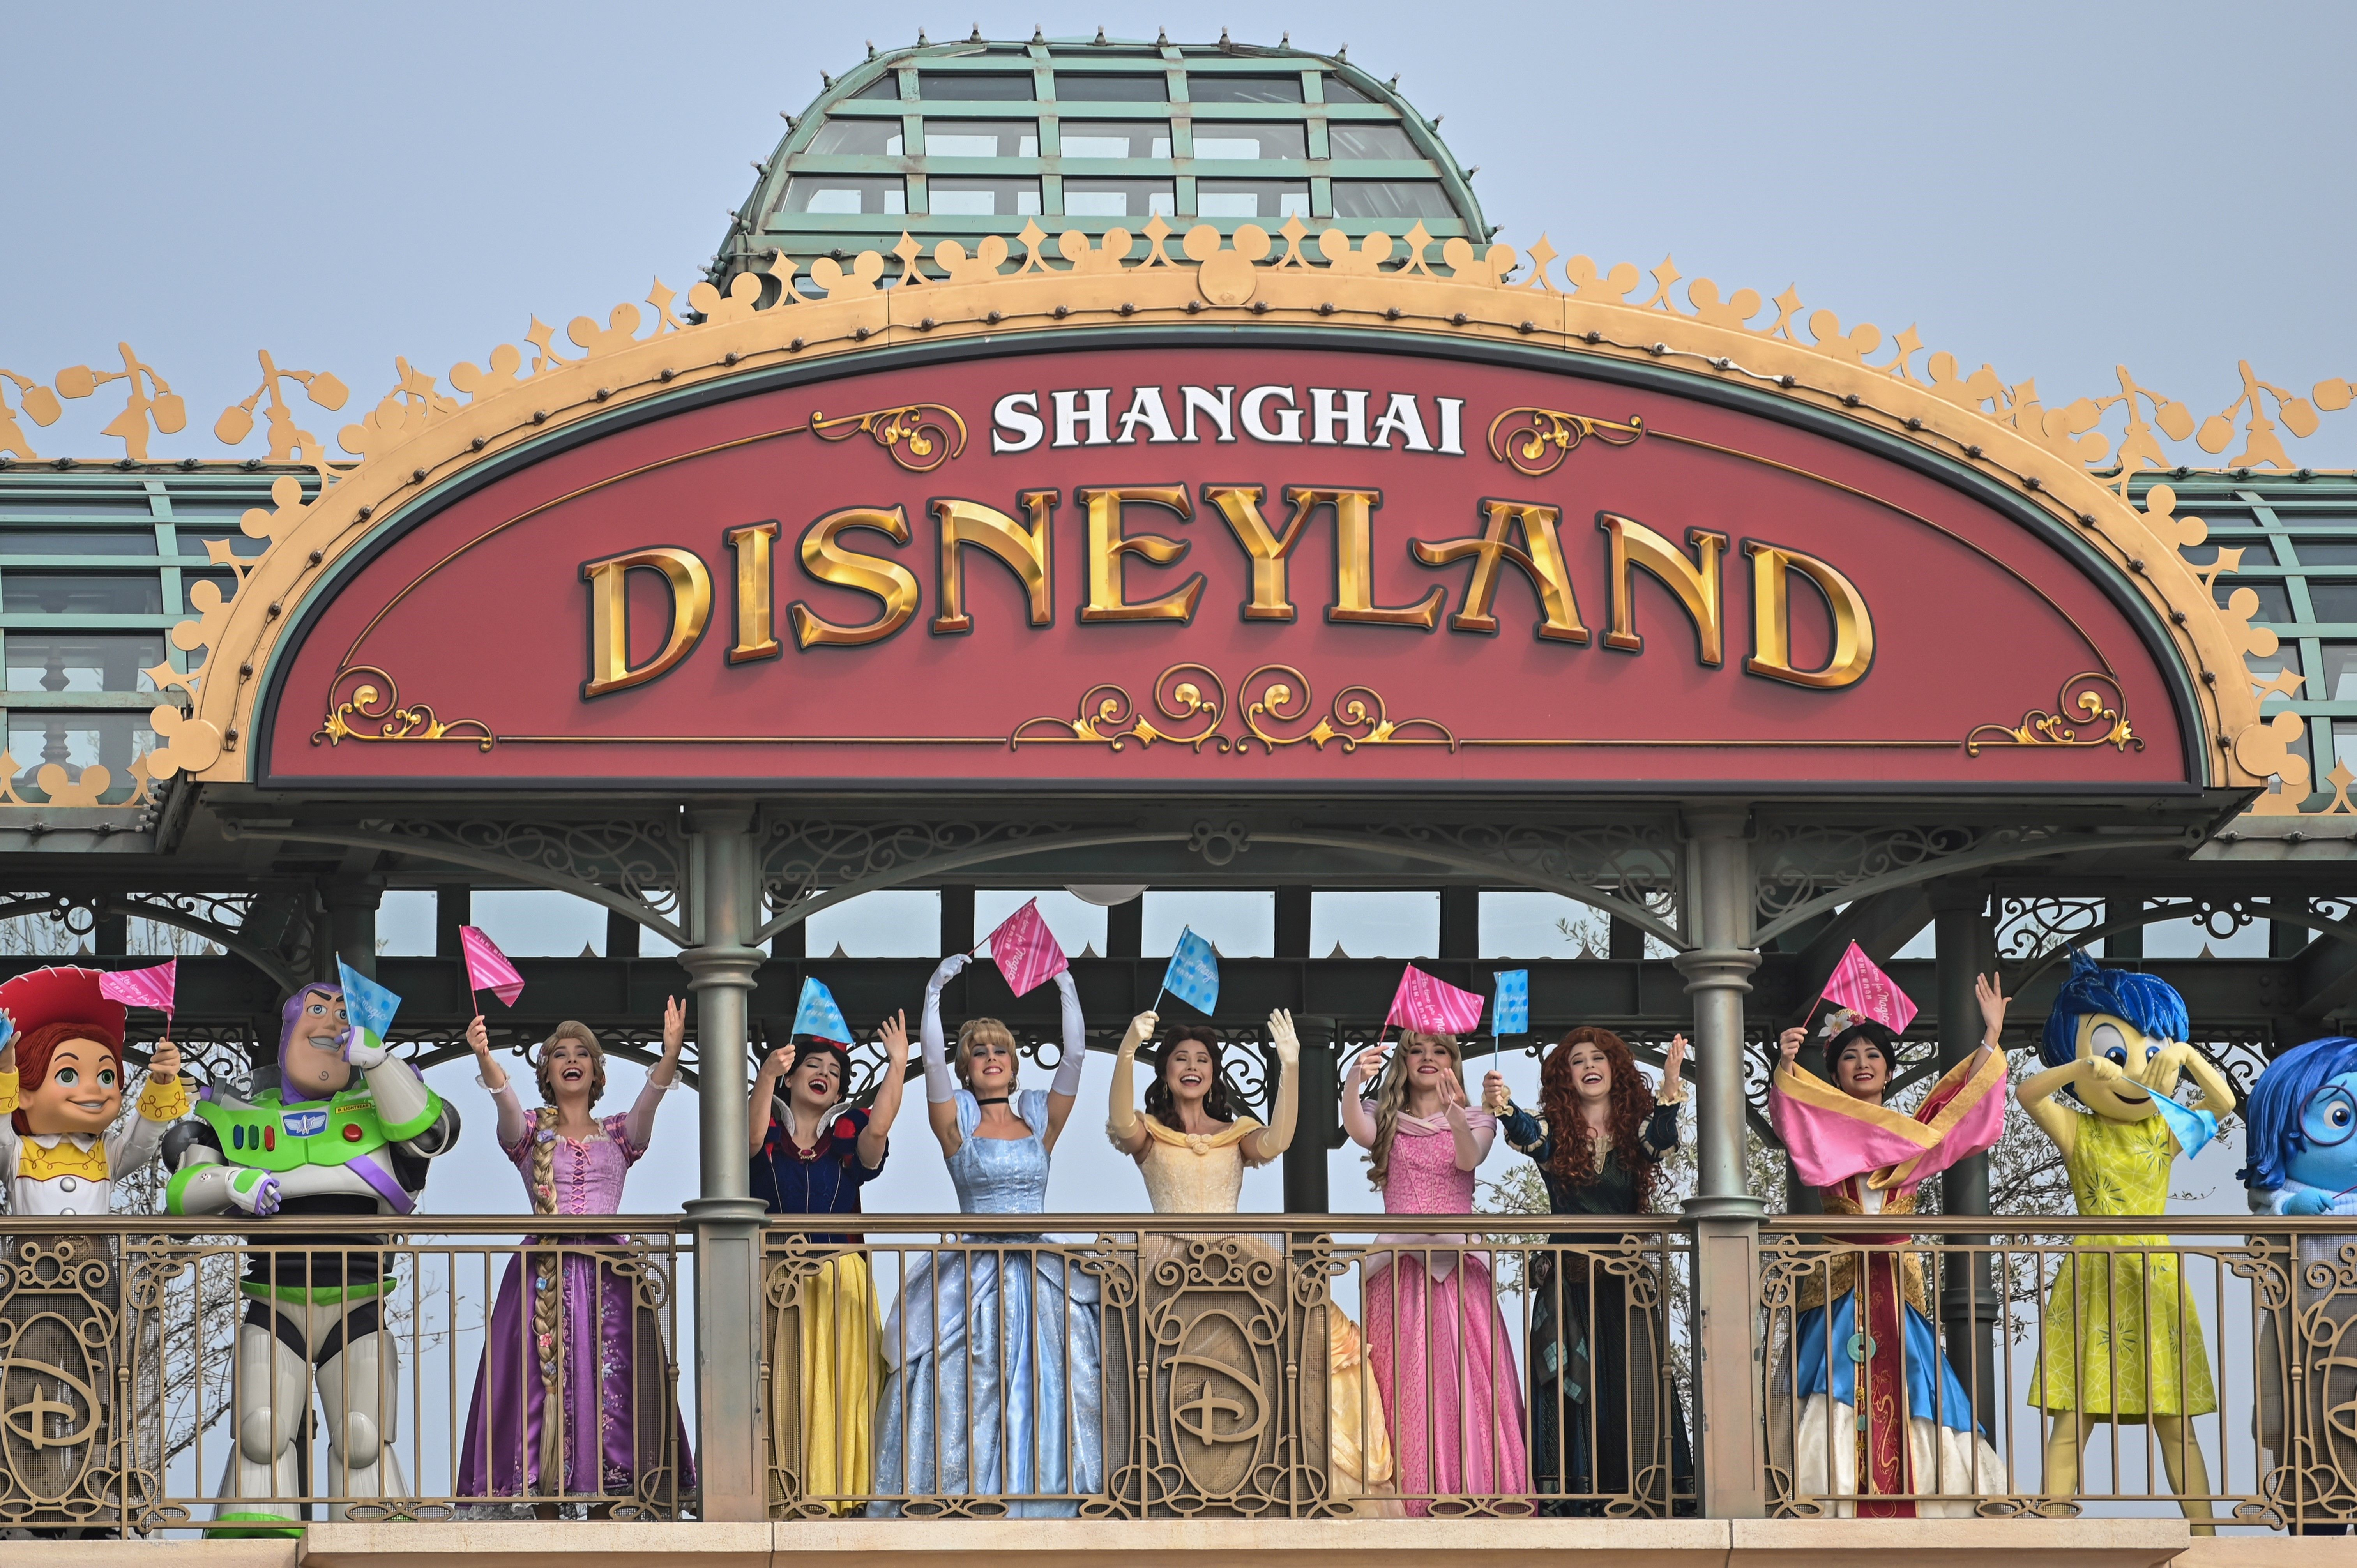 Performers dressed as Disney characters are seen during the reopening of the Disneyland amusement park in Shanghai on May 11, 2020. - Disneyland Shanghai reopened on May 11 to the public after being closed since January due to the COVID-19 coronavirus outbreak. (Photo by Hector RETAMAL / AFP) (Photo by HECTOR RETAMAL/AFP via Getty Images)